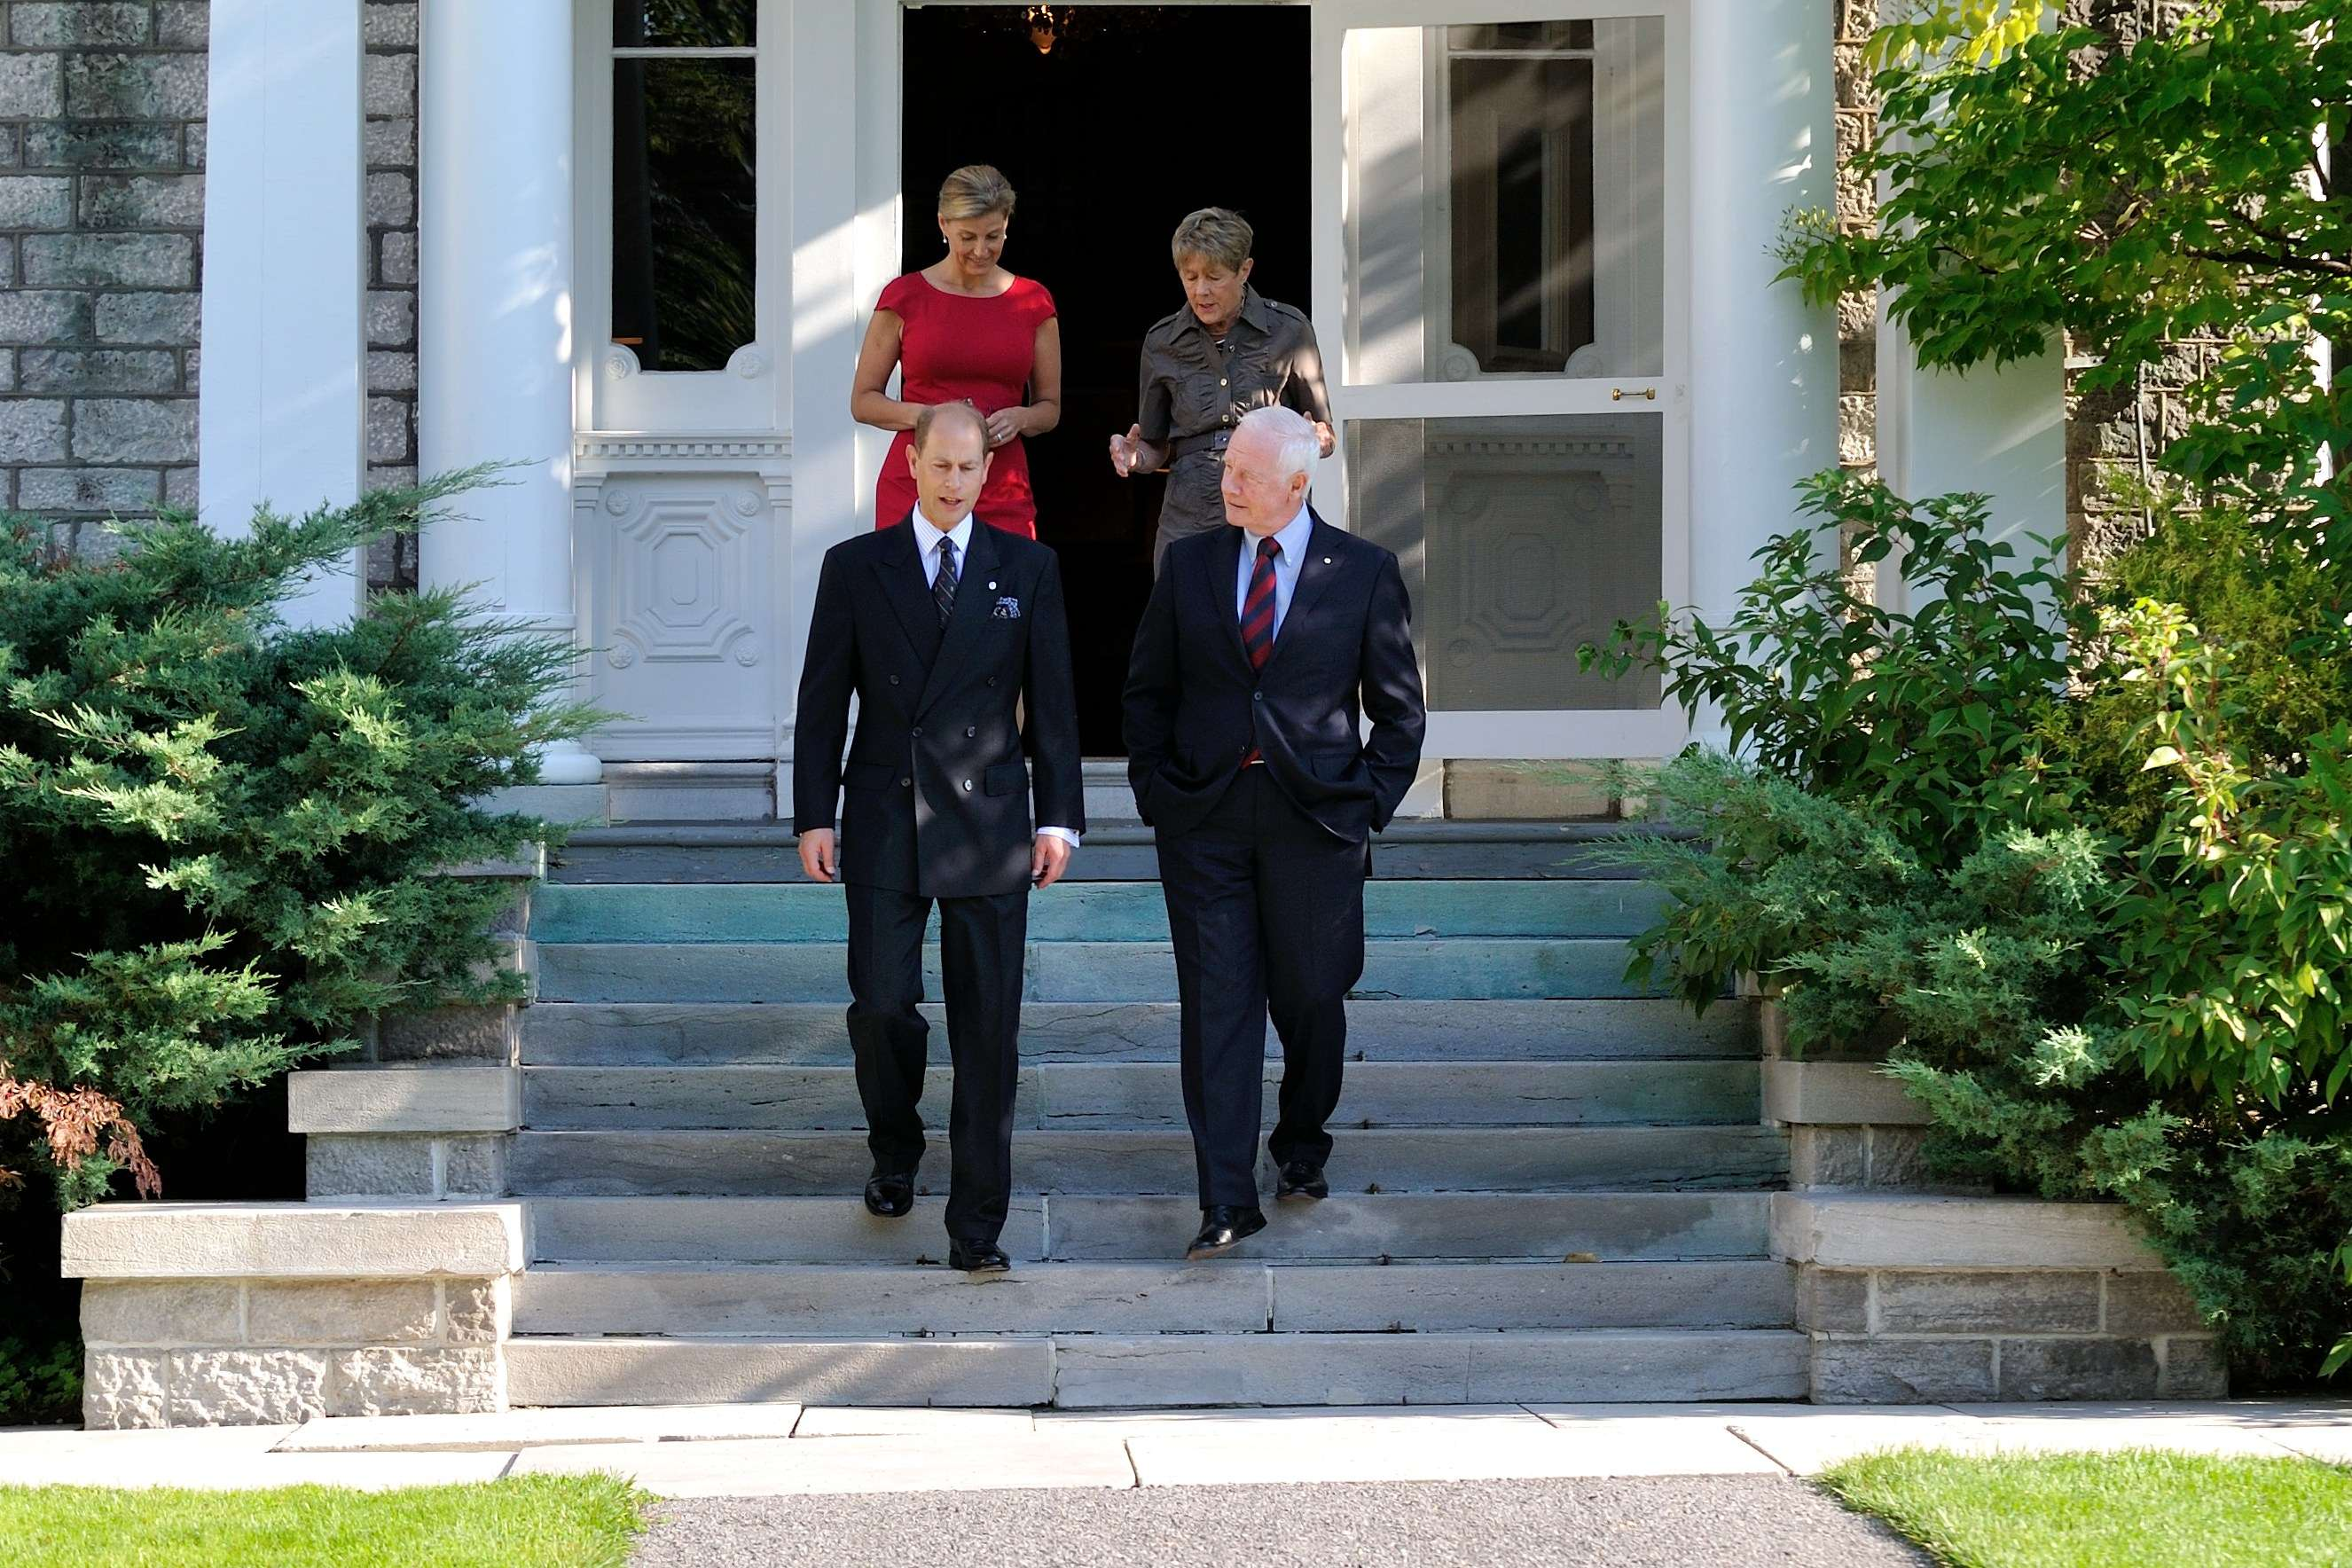 This is the Earl's 33rd visit to Canada, and the Countess' 9th visit. Starting in Ottawa on September 11, Their Royal Highnesses will travel to Iqaluit, Nunavut, before returning to Ontario for a tour that will include stops in Trenton, Toronto, Hamilton, St. Catharines and Midland.